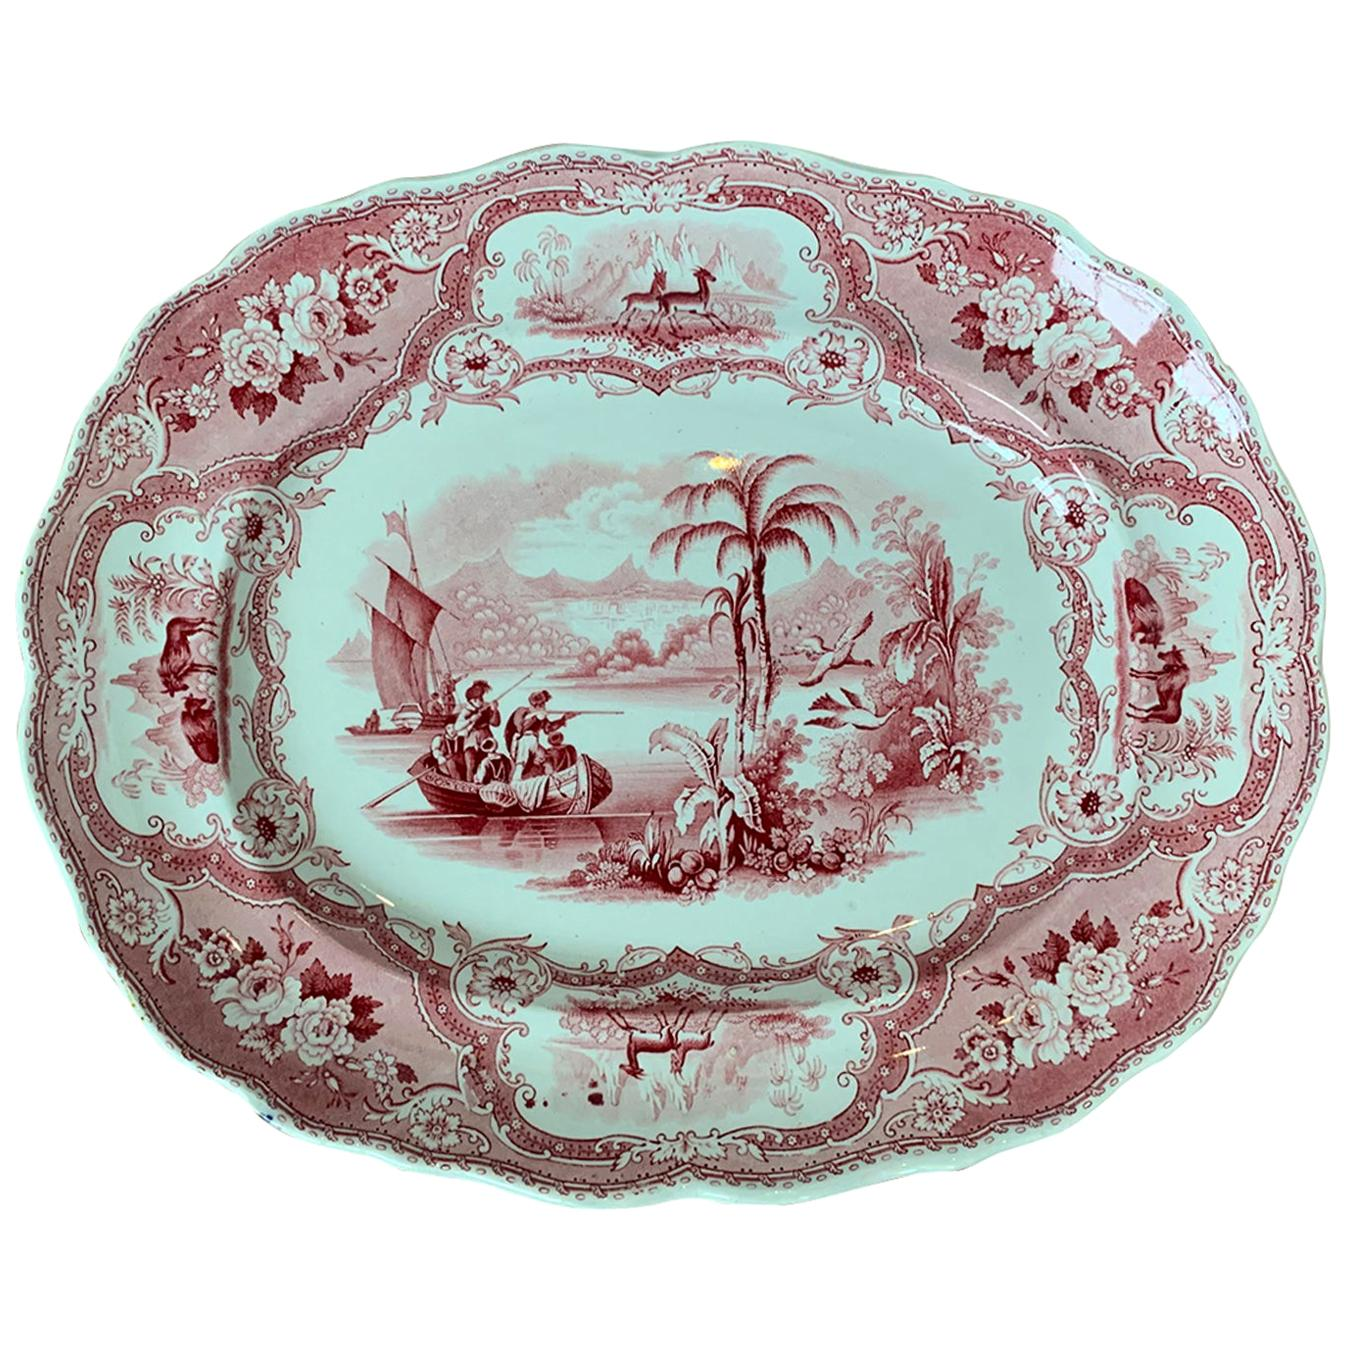 19th Century English Staffordshire Transferware Charger Columbus Pattern, Marked